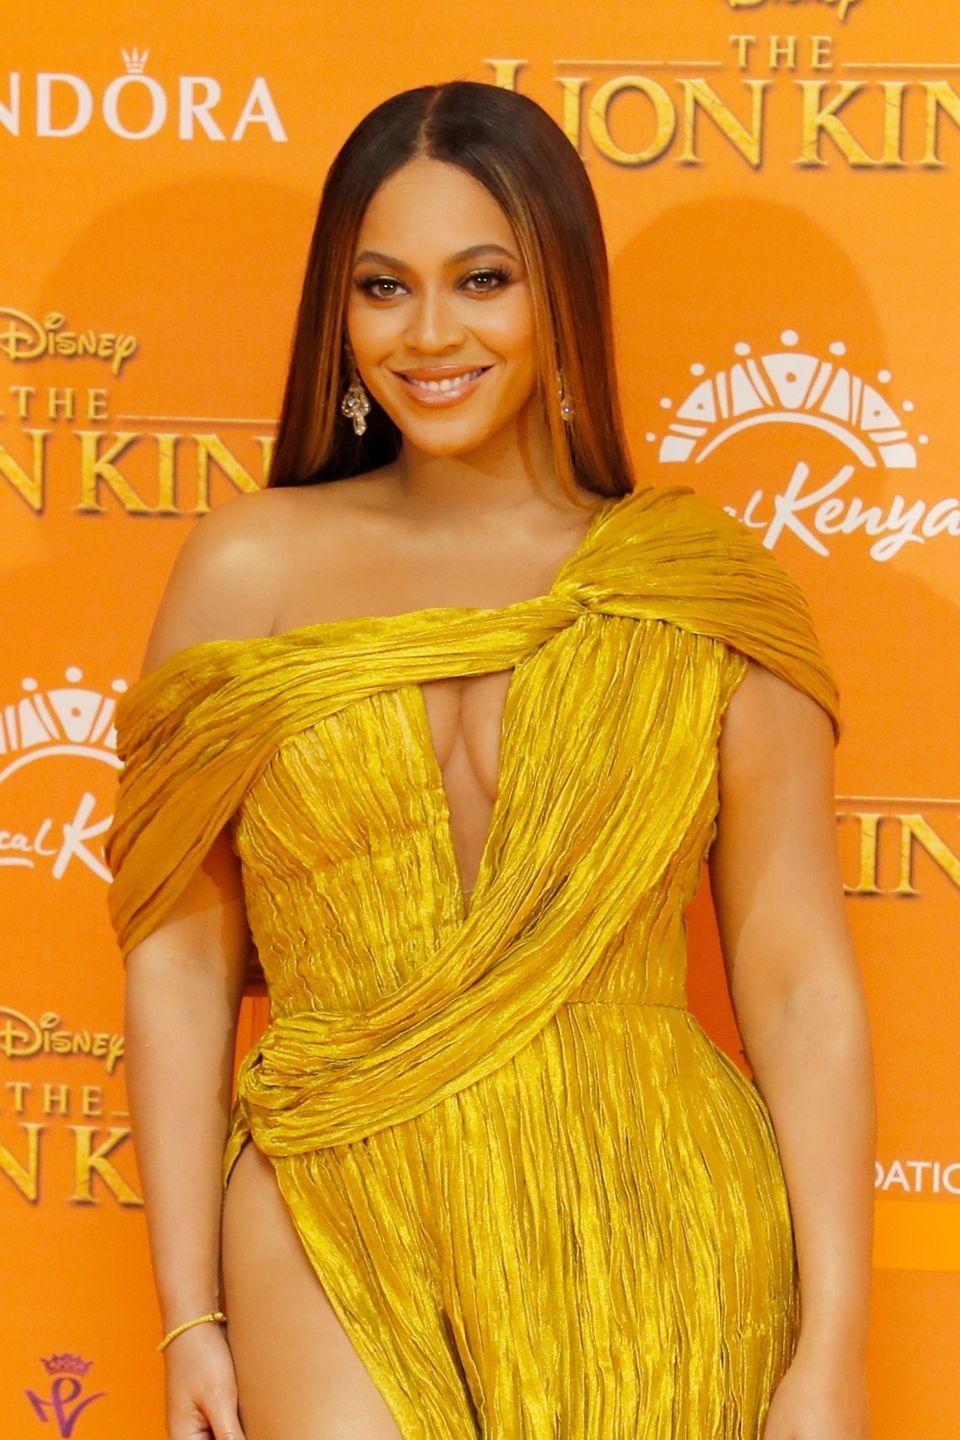 <p>While <strong>Beyoncé</strong> is known for her honey-toned locks, she debuted a richer chestnut balayage for the premiere of <em>The </em><em>Lion King</em>. </p>